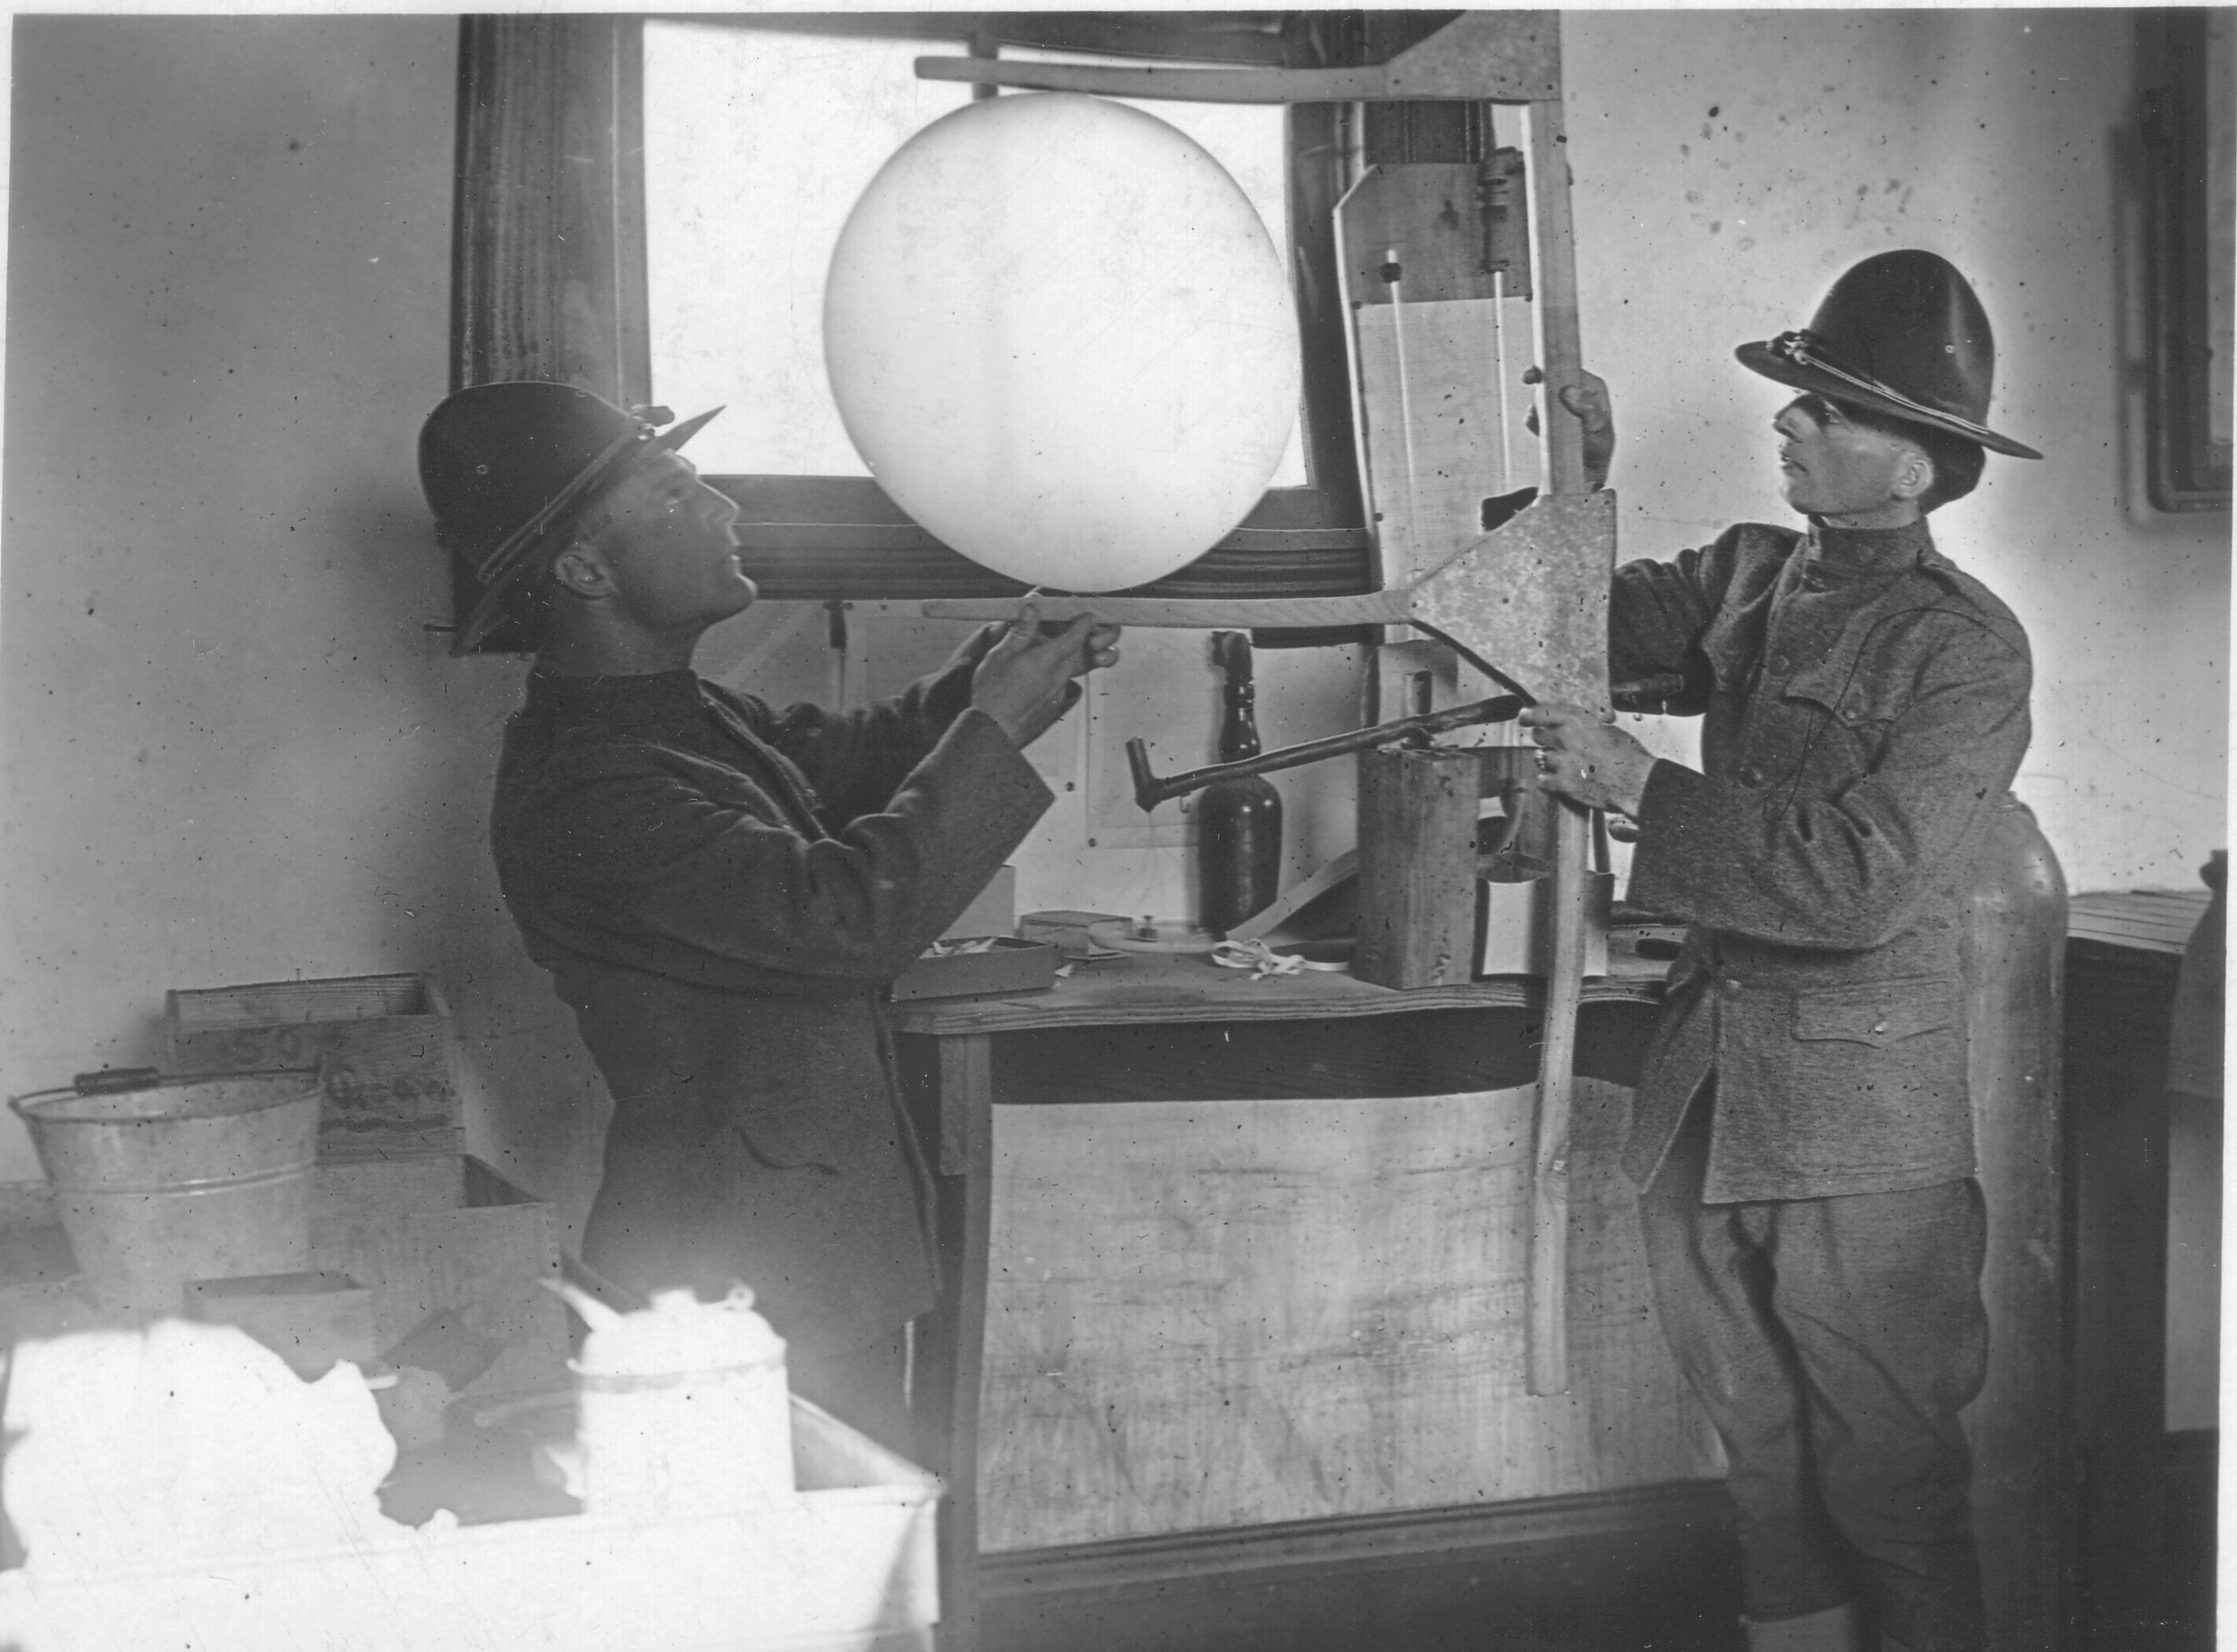 Privates Bly and Greening measure a weather balloon to ensure it is properly filled with hydrogen. Photo by A.W. Atkinson,US Army Signal Corps.Courtesy of the US Army Heritage and Education Center, Carlisle, PA.